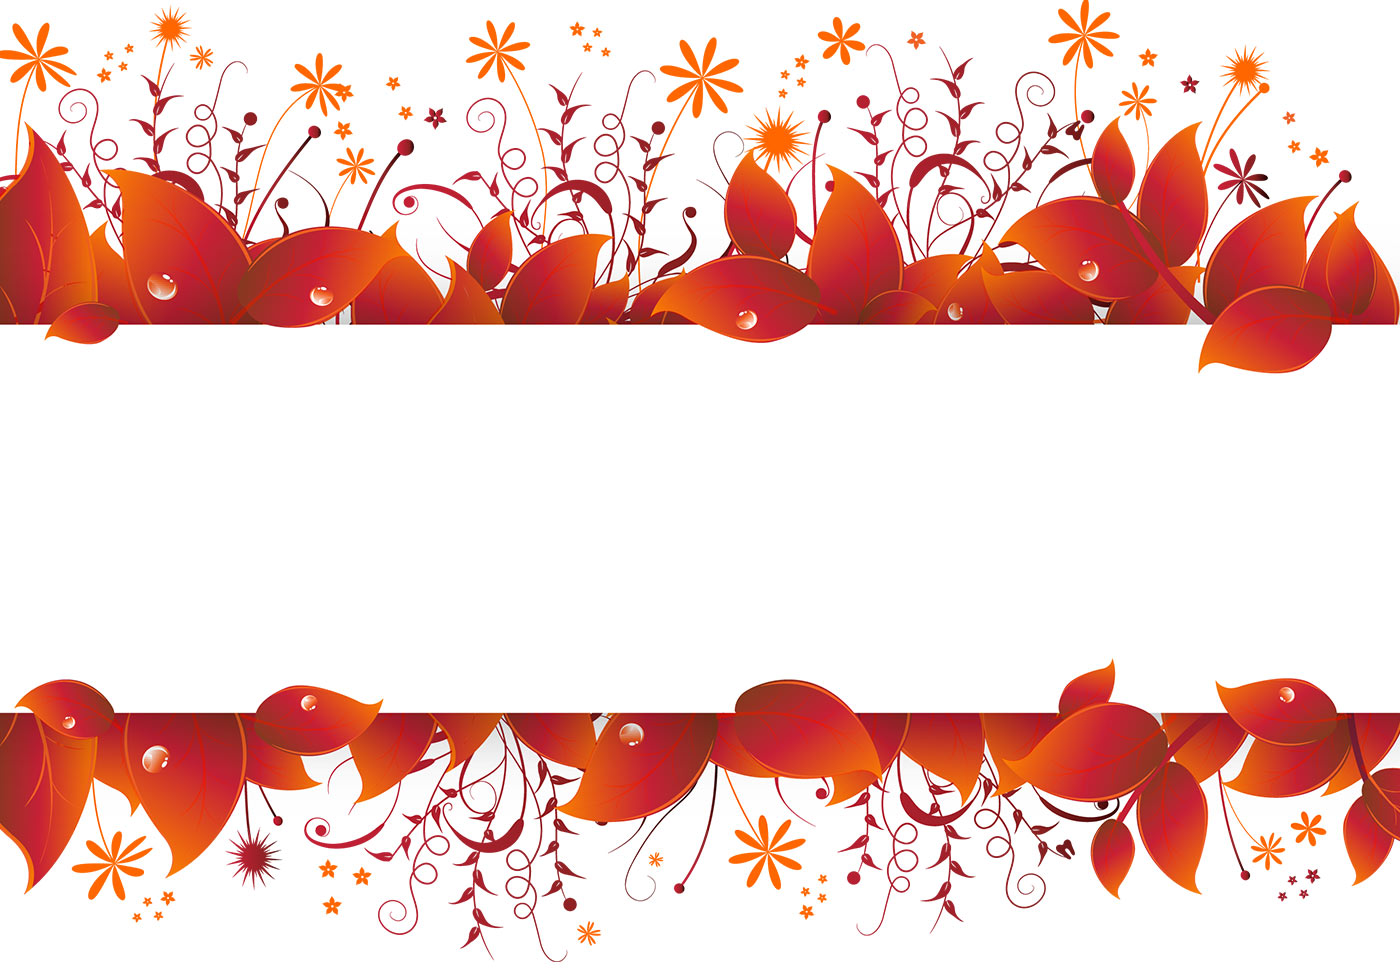 Fall Leaf Pattern Wallpaper Autumn Leaves Banner Vector Download Free Vector Art